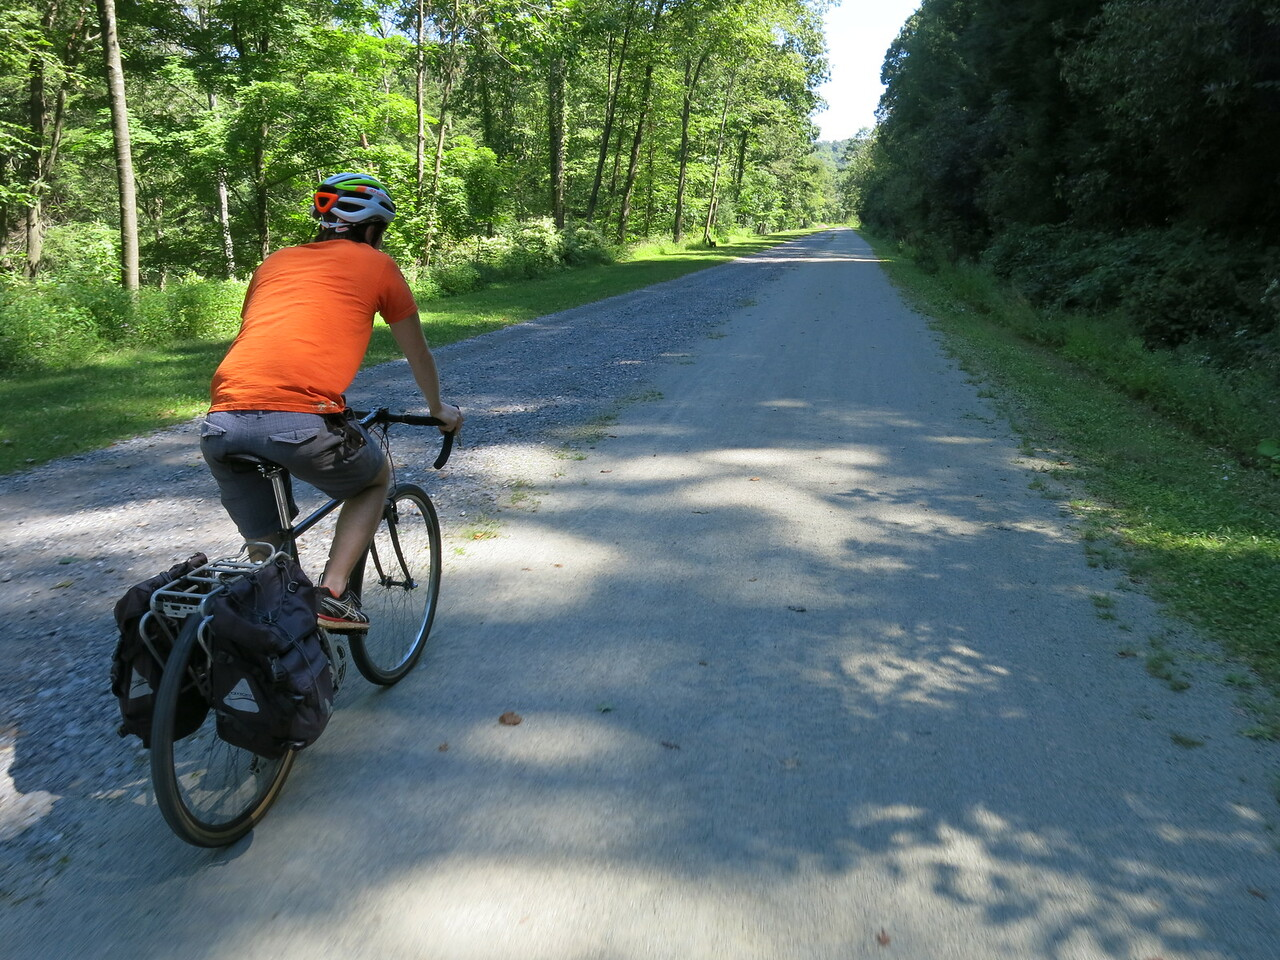 A short section of paved trail as we leave Rockwood at about MP 43.5